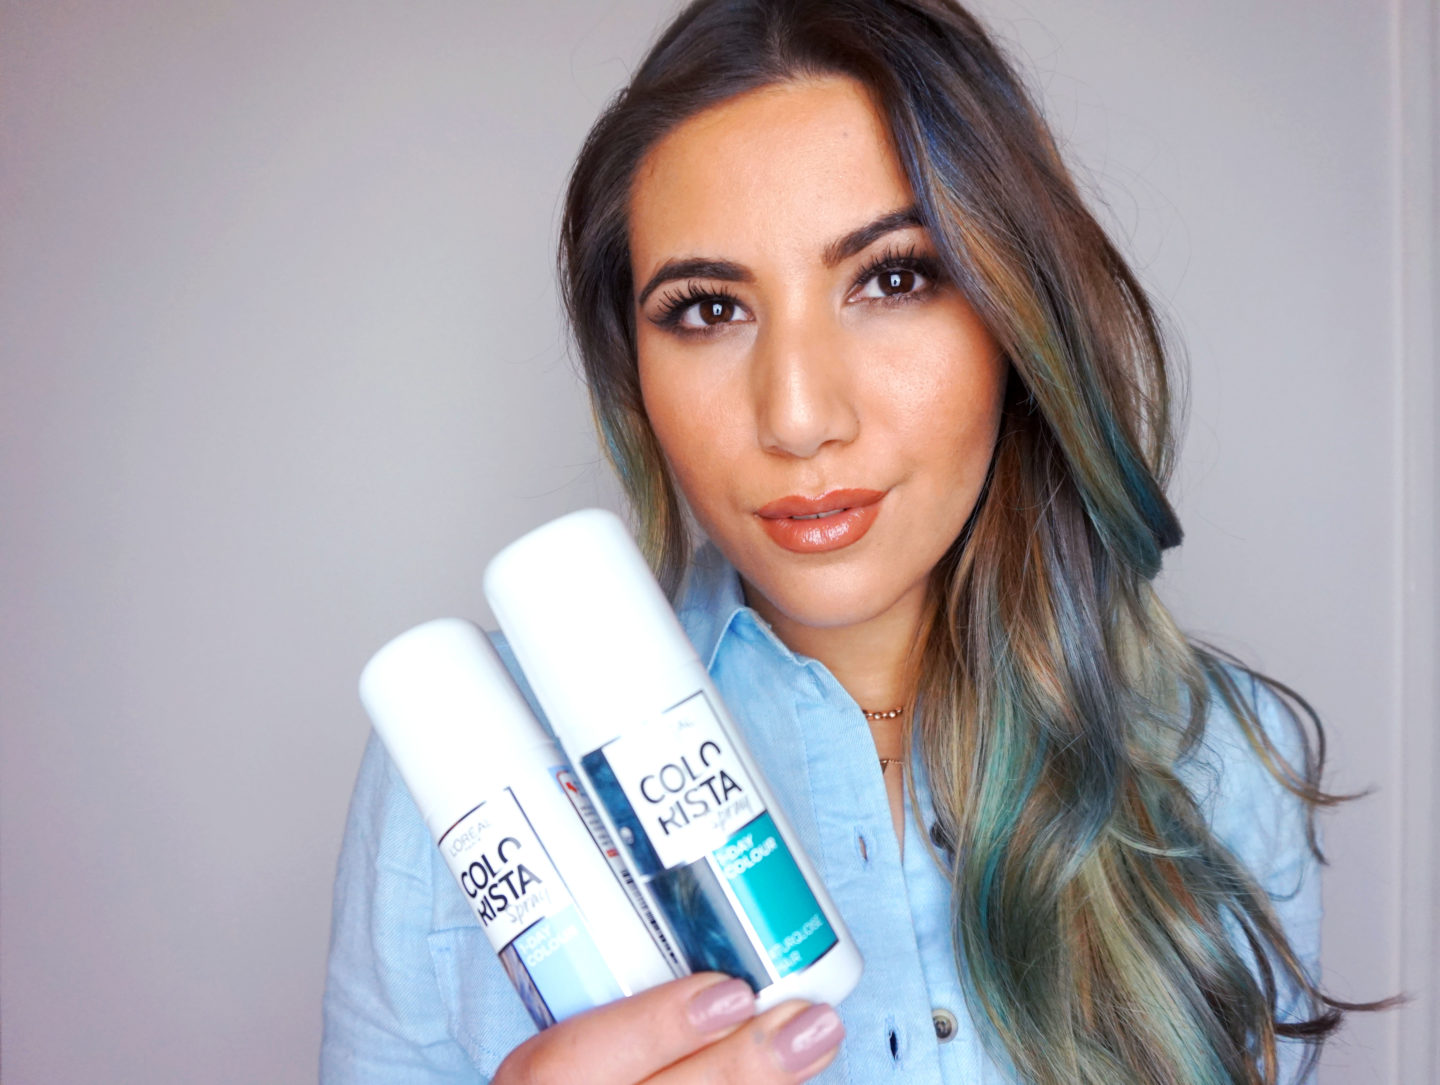 Festival Ready Hair In Seconds With L'Oreal Paris Colorista Sprays